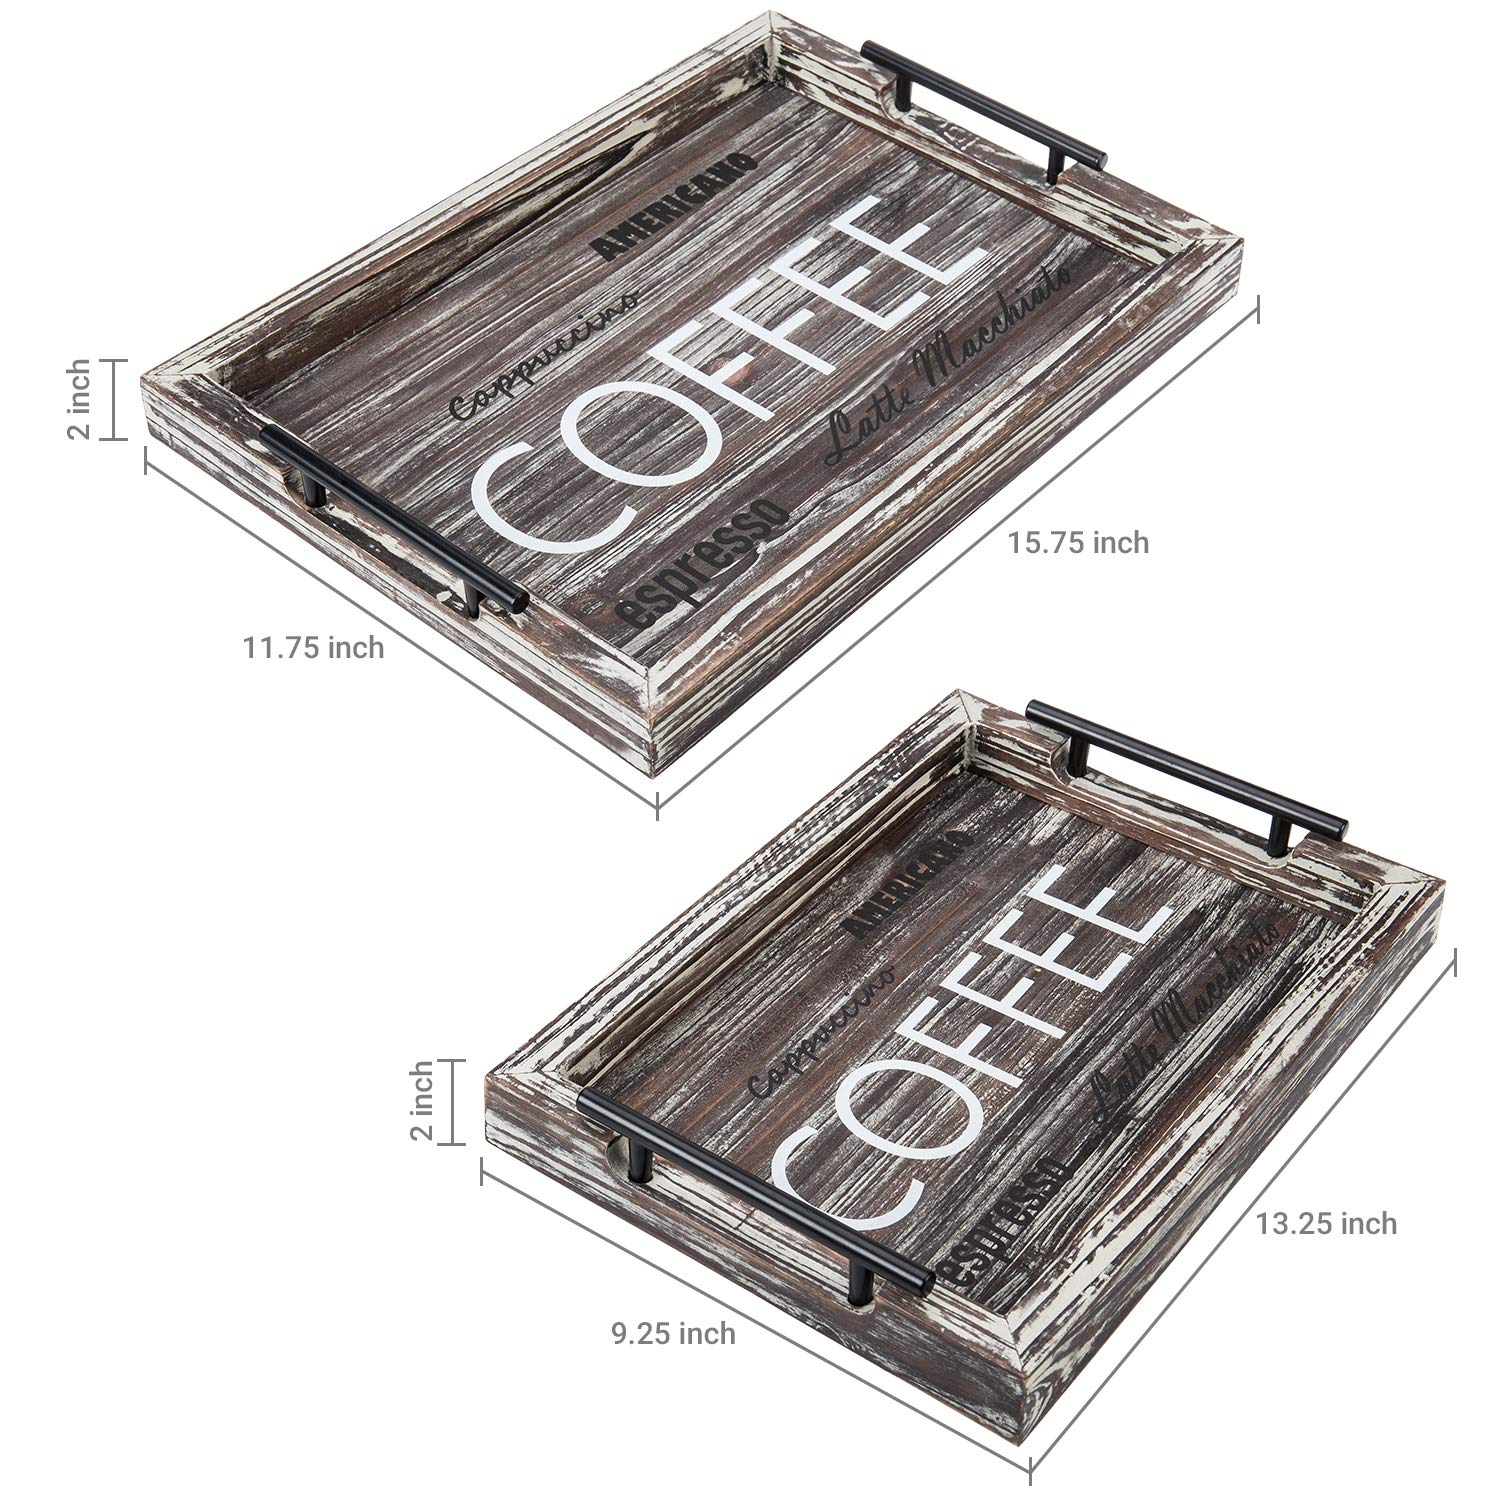 Torched Wood Coffee Nesting Serving Trays with Metal Handles, Set of 2